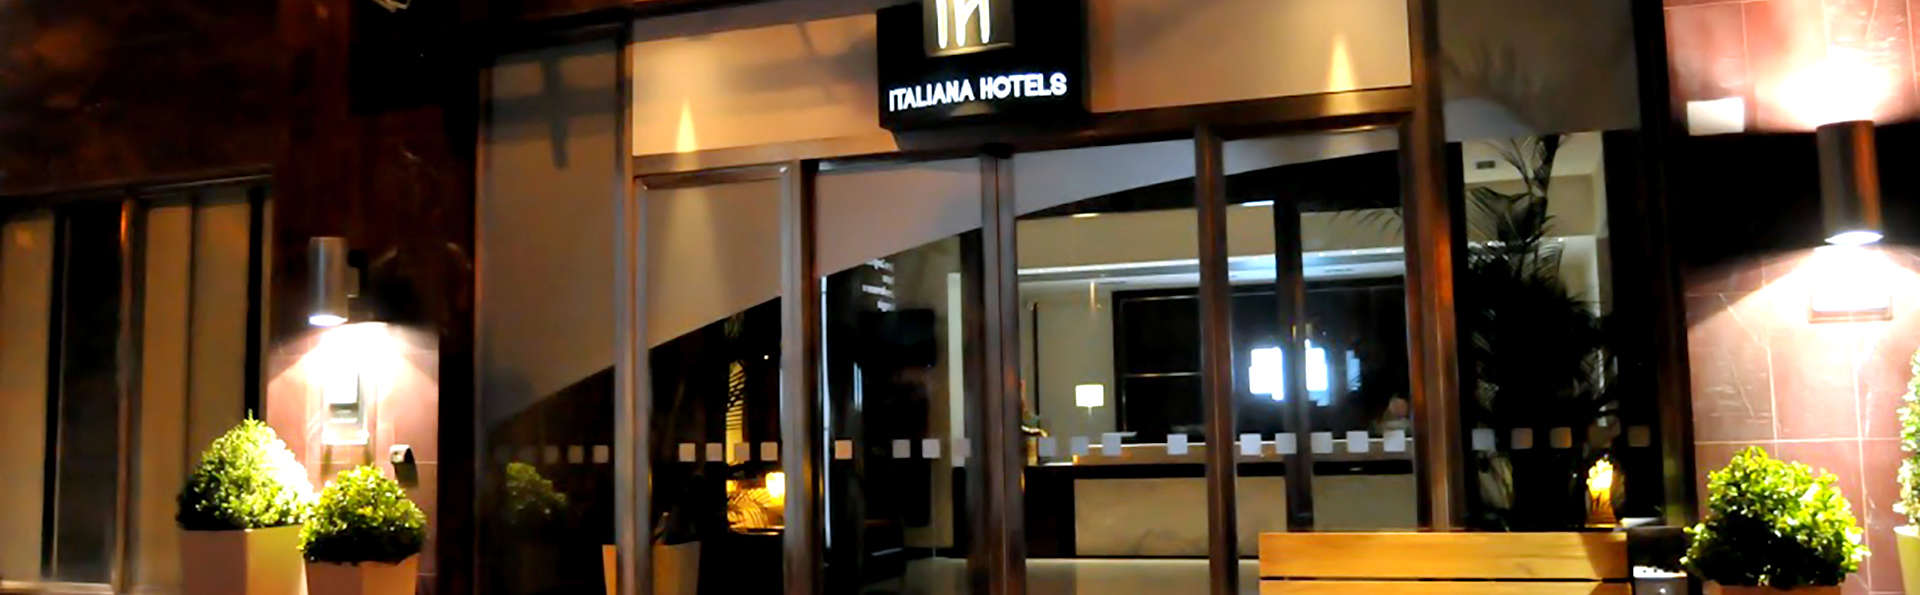 Italiana Hotels Cosenza - Edit_Front.jpg